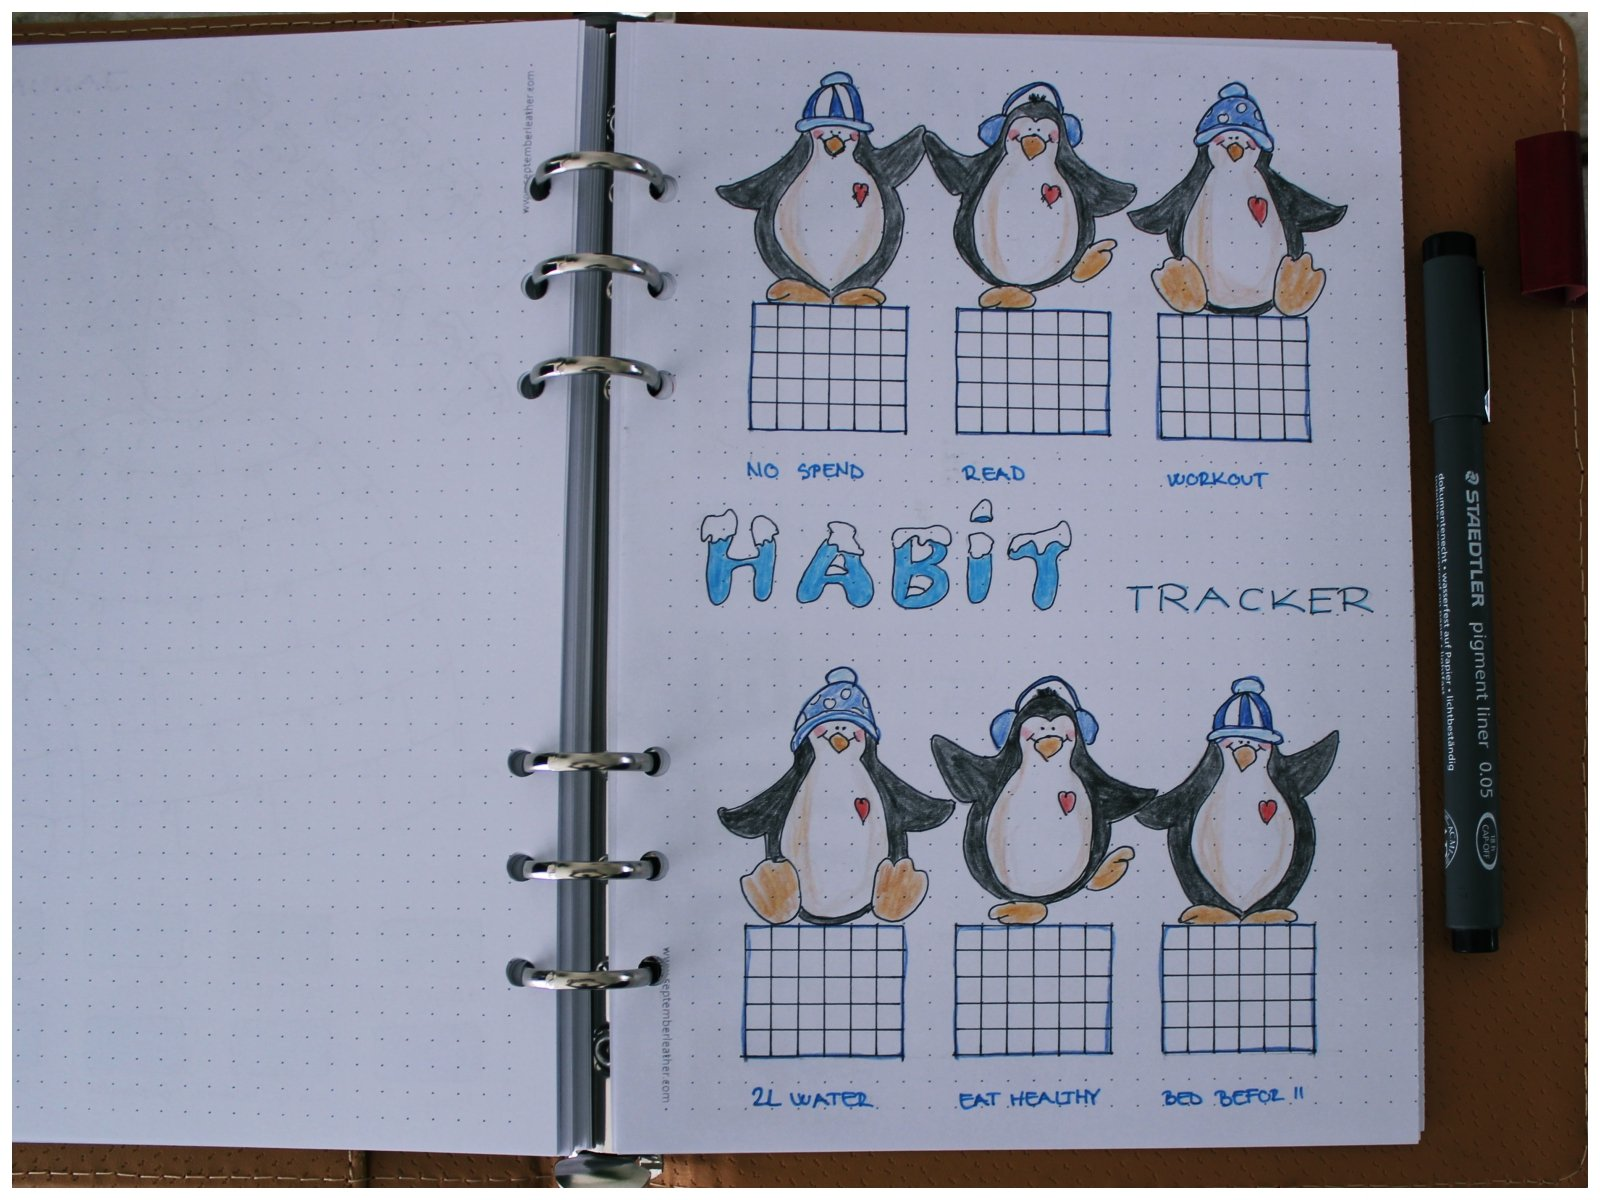 Bullet journal - January habit tracker - itstartswithacoffee.com #bulletjournal #bujo #bujolove #bulletjournaling #habittracker #tracker #habittracking #January #bulletjournallove #bujojunkies